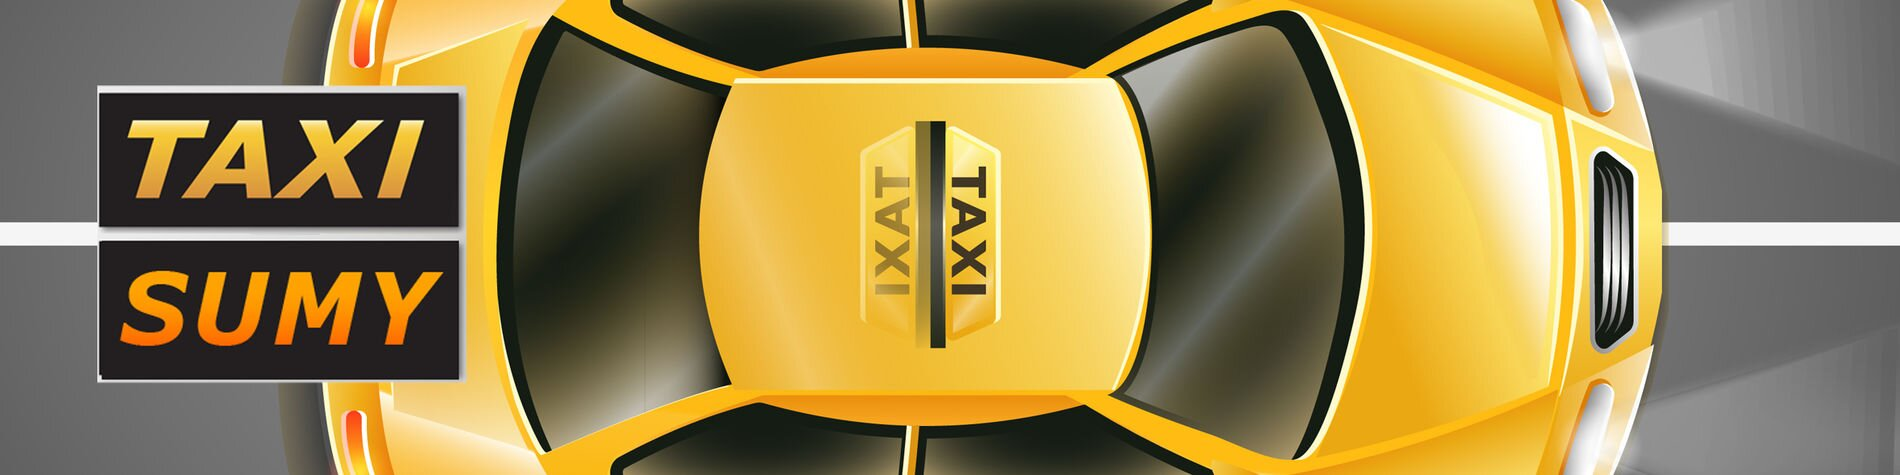 Taxi Sumy: contacts